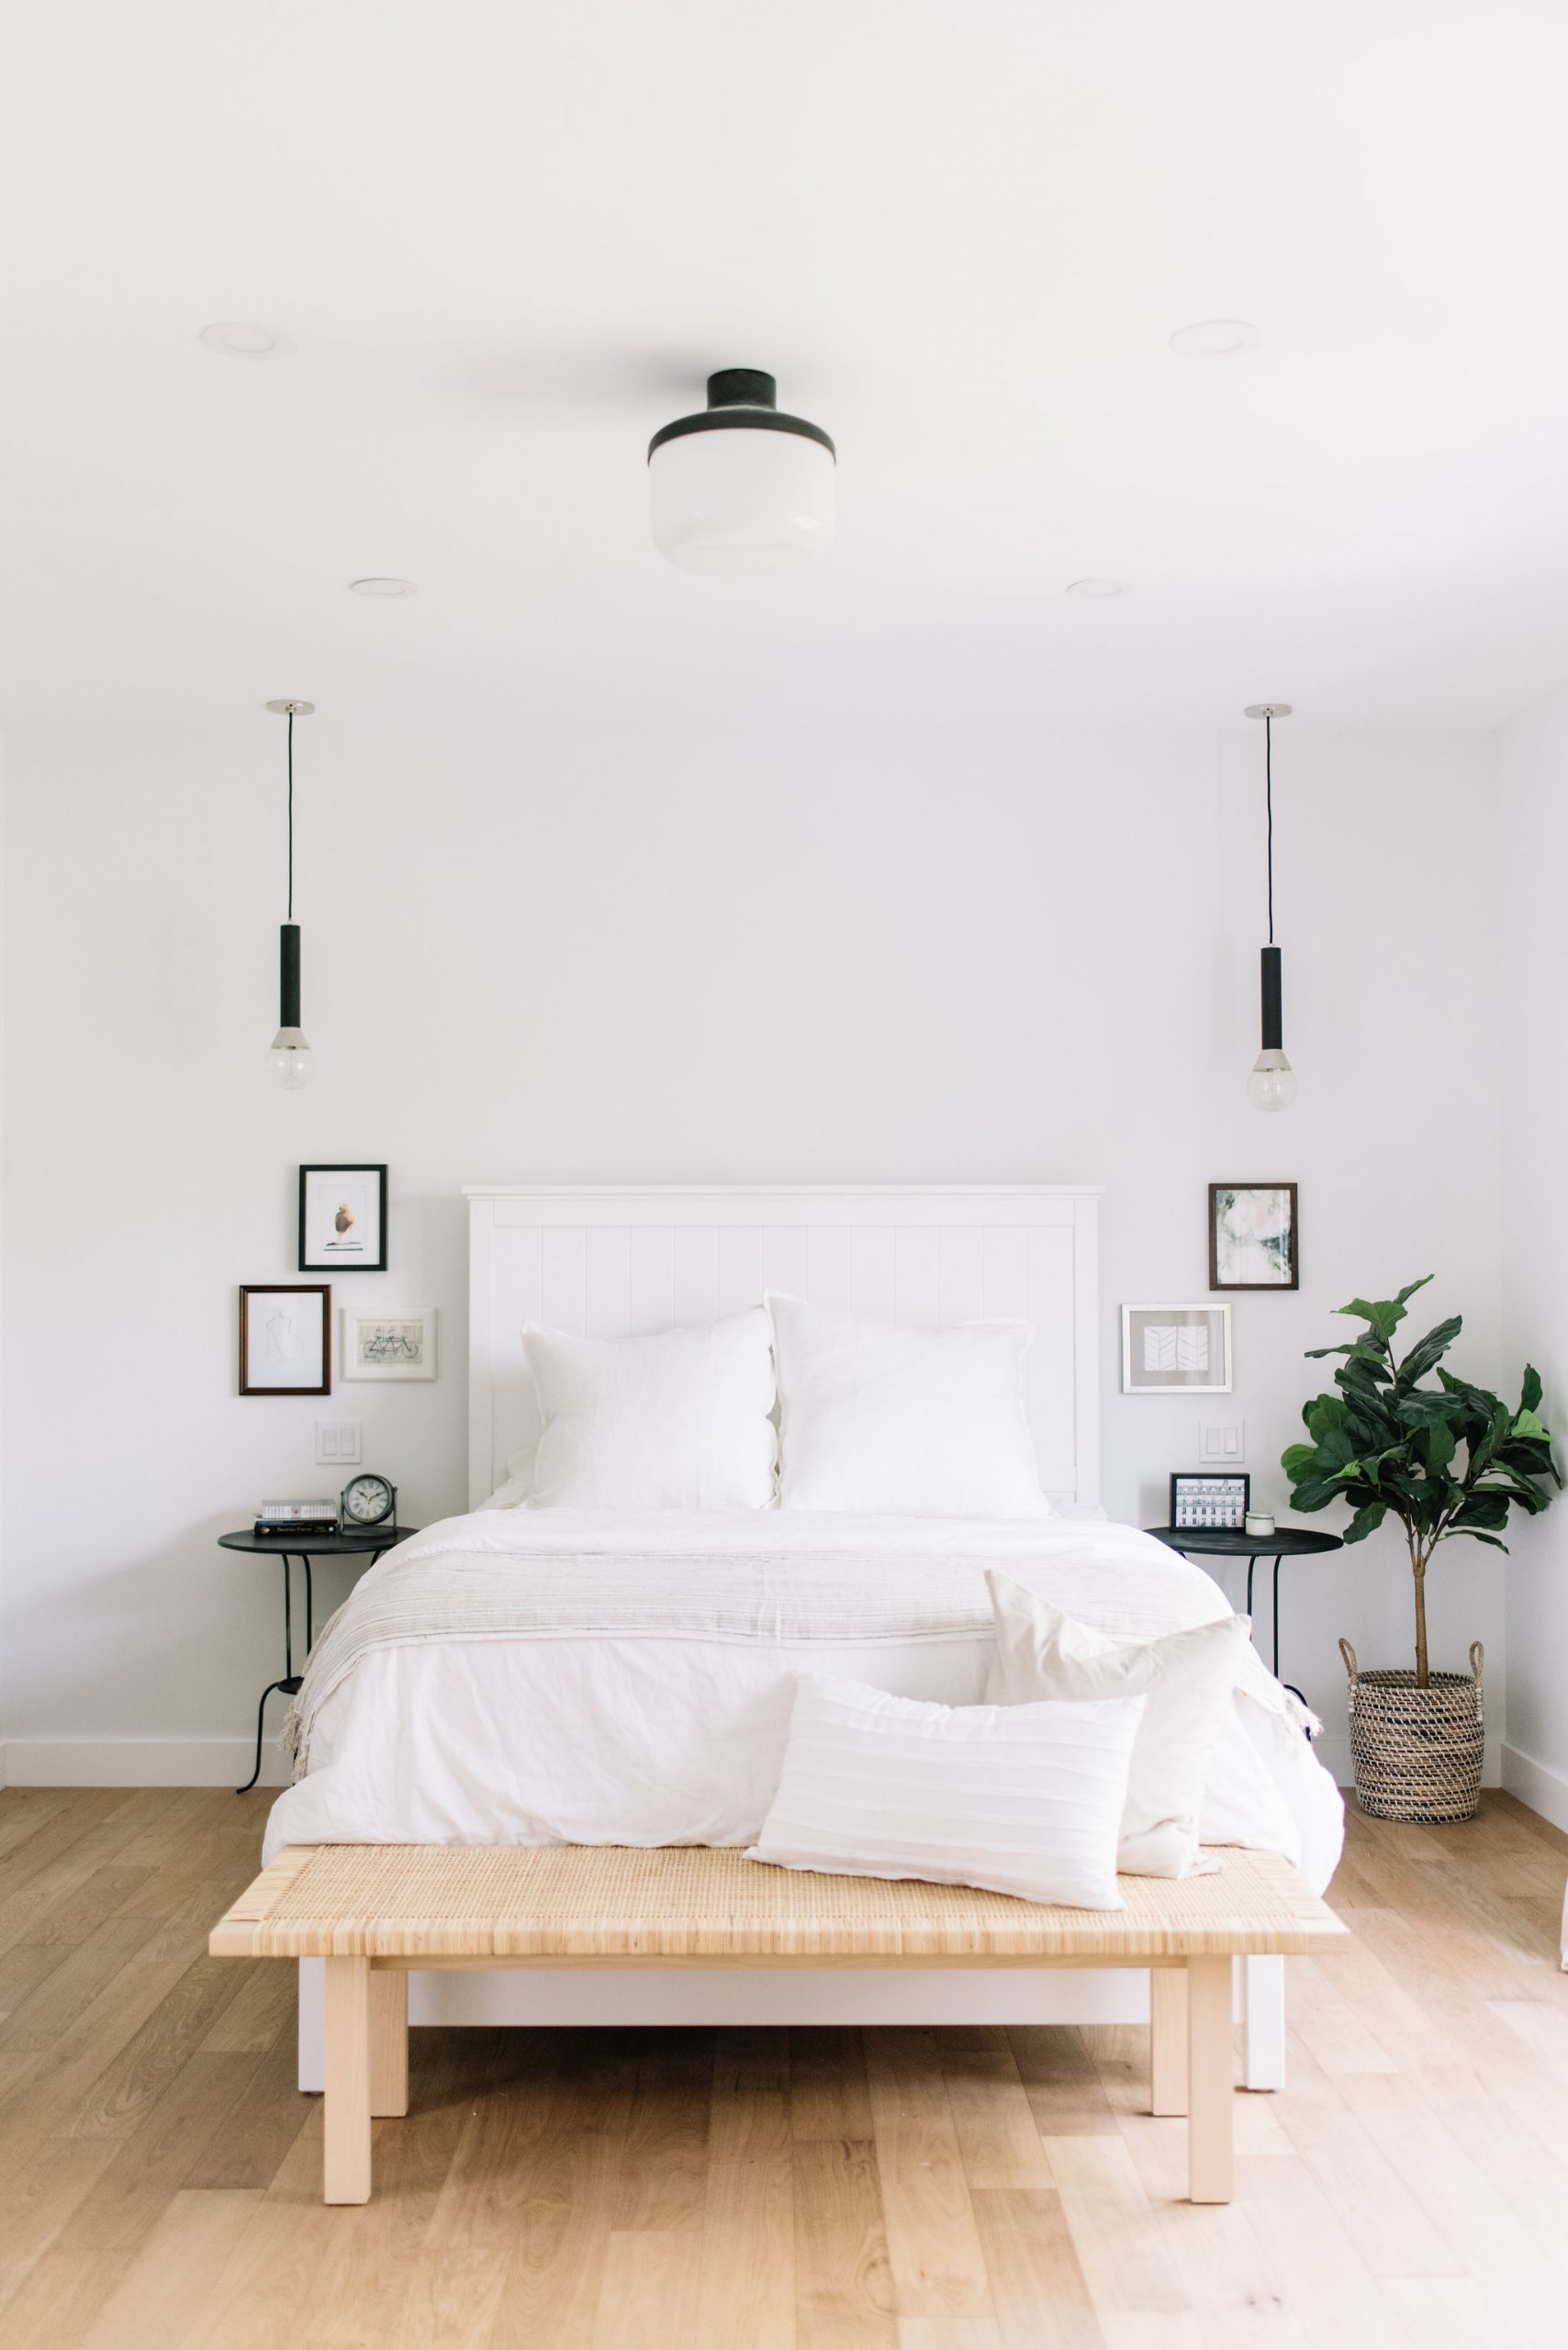 White bedroom with reading lights